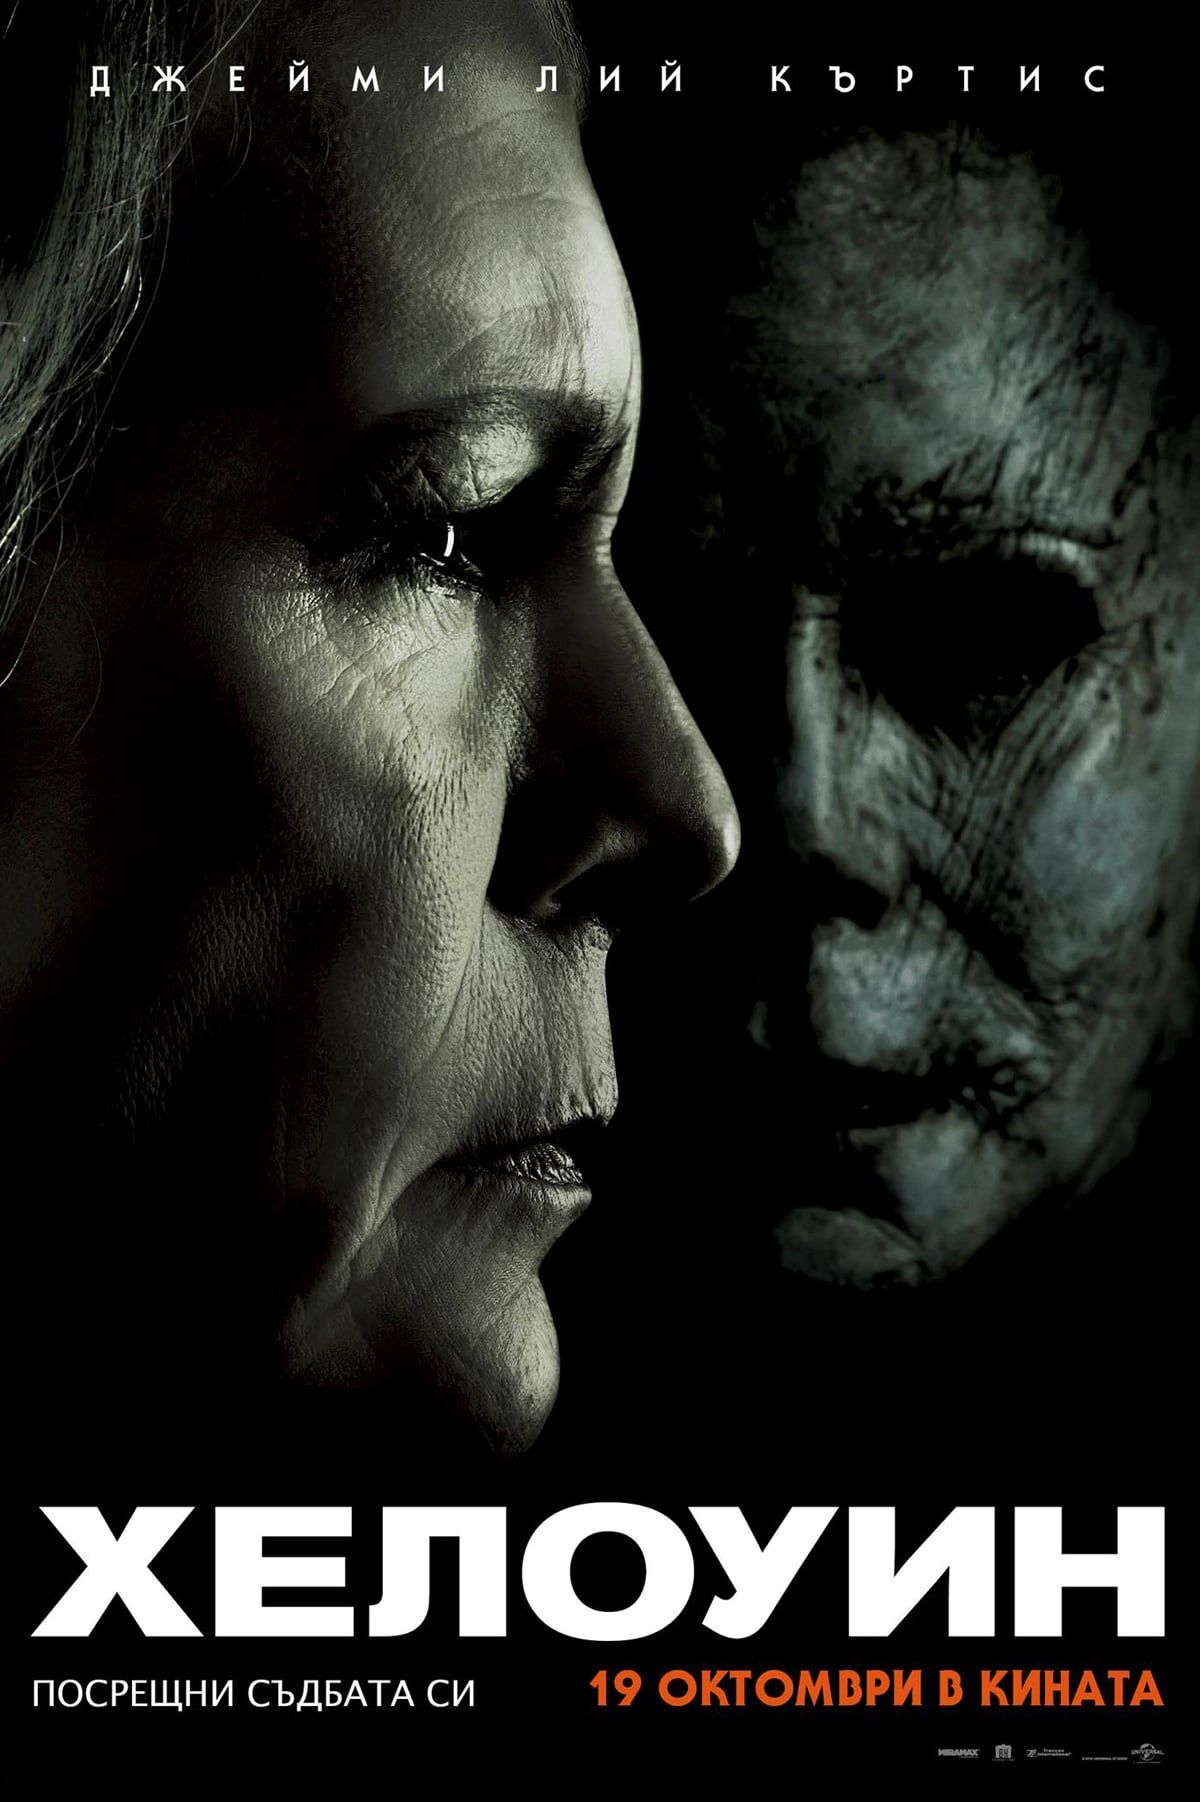 Pin By Cathriena Smith On Album 2 In 2020 Halloween Film Halloween Full Movie Michael Myers